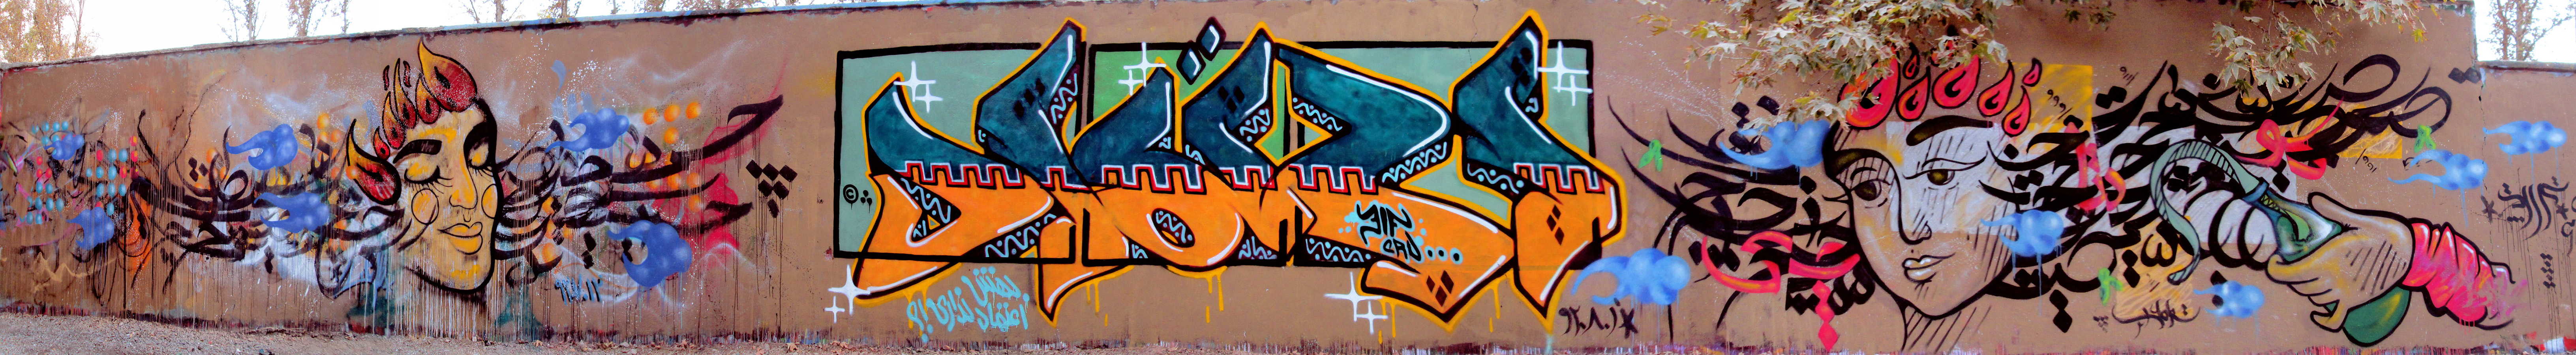 Making Graffiti An Iranian Art The Works Of Tehranbased Street - Amazing graffiti alters perspective space